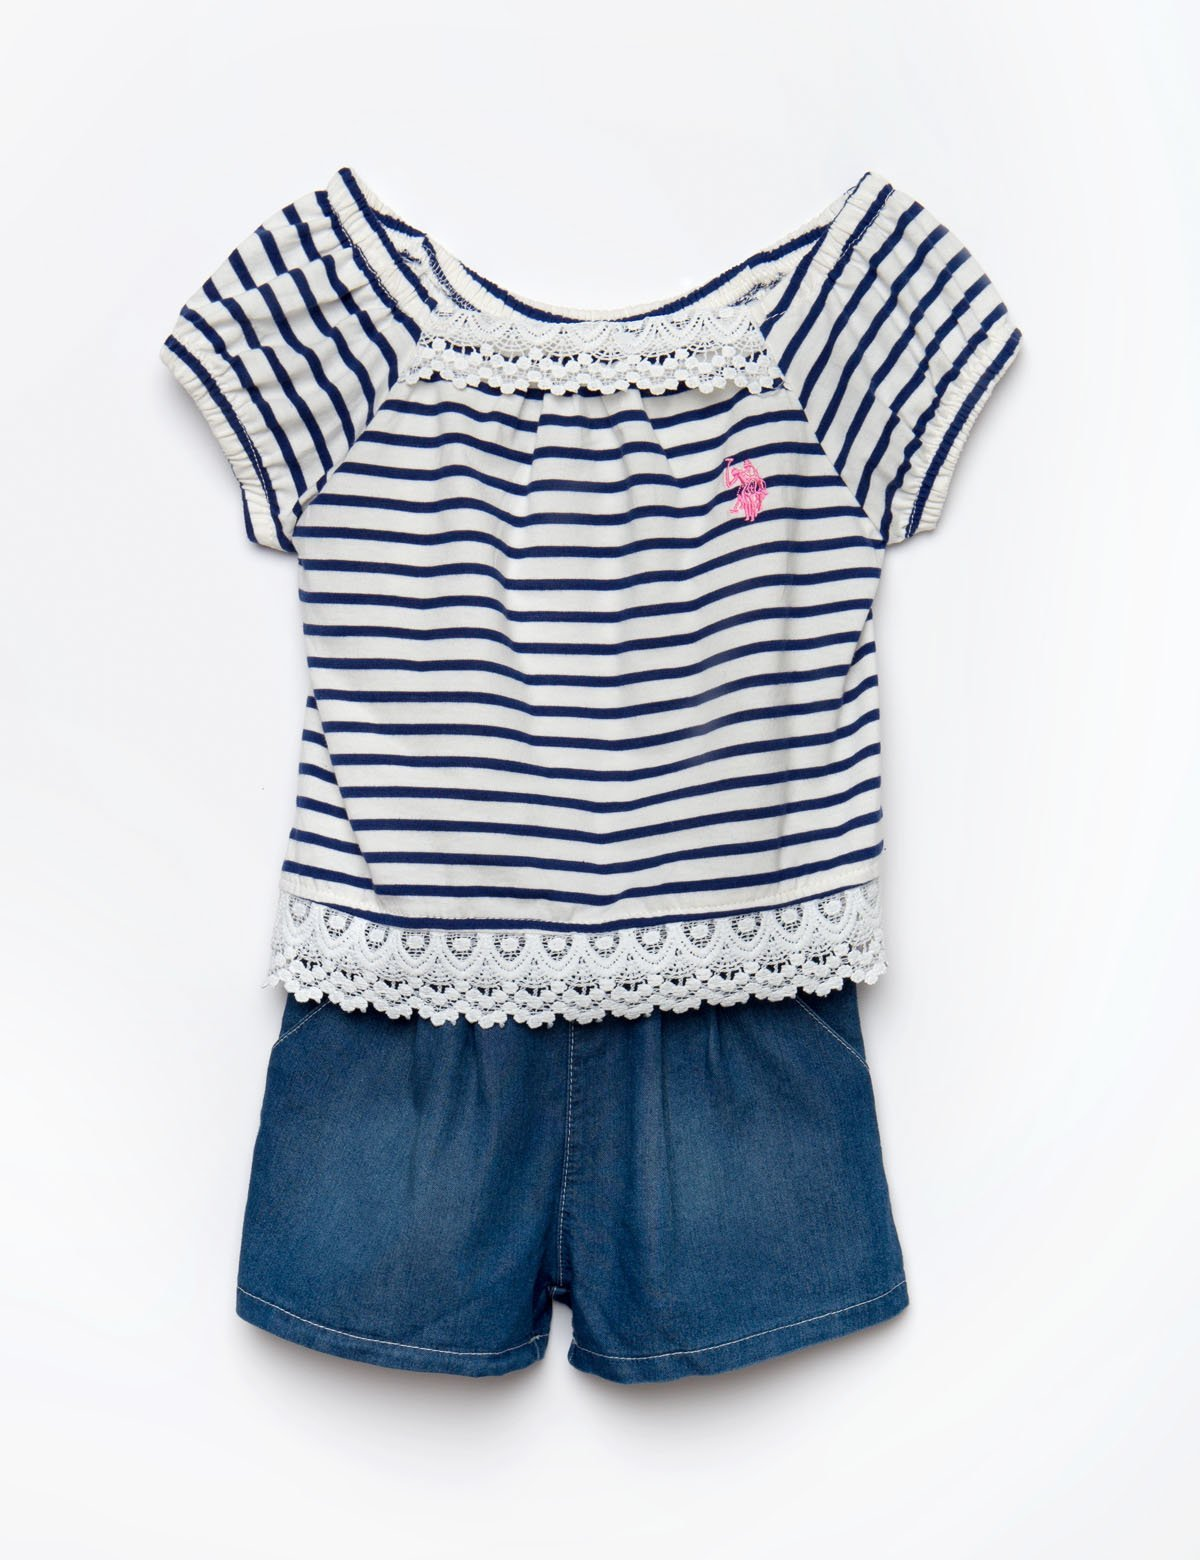 TODDLER NAVY AND VANILLA ROMPER - U.S. Polo Assn.